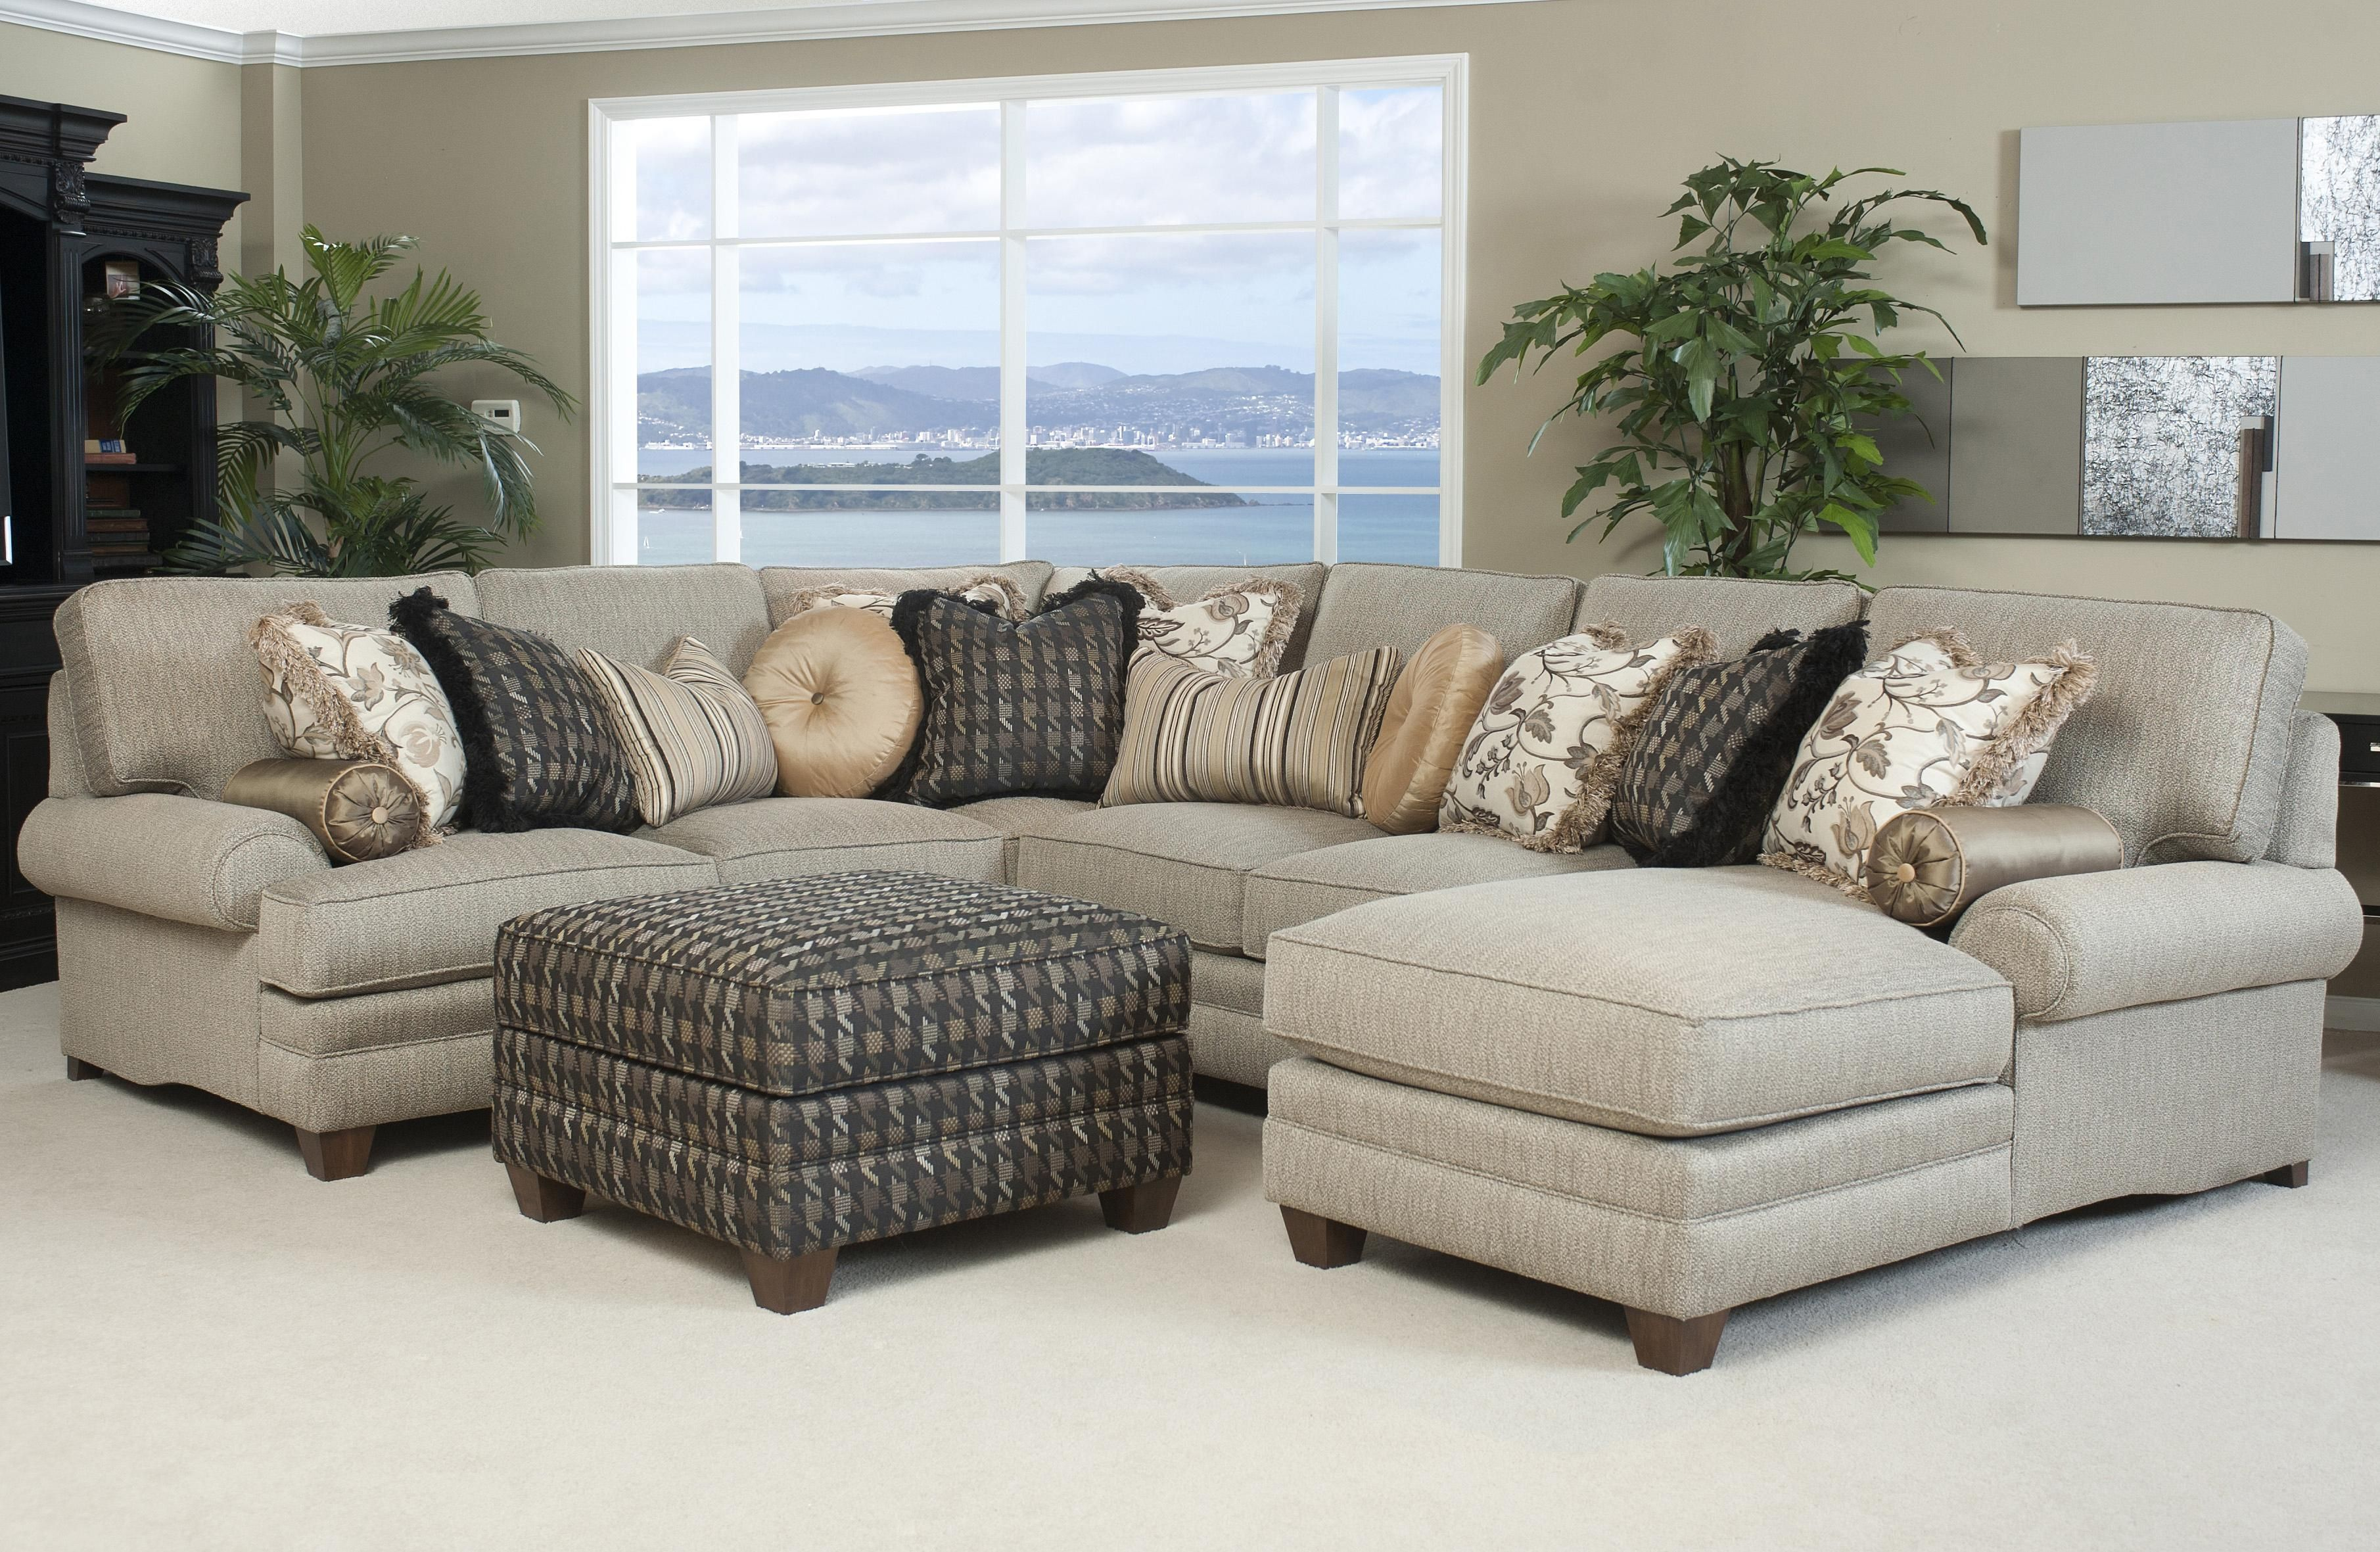 Captivating Traditional Sectional Sofas Chaise